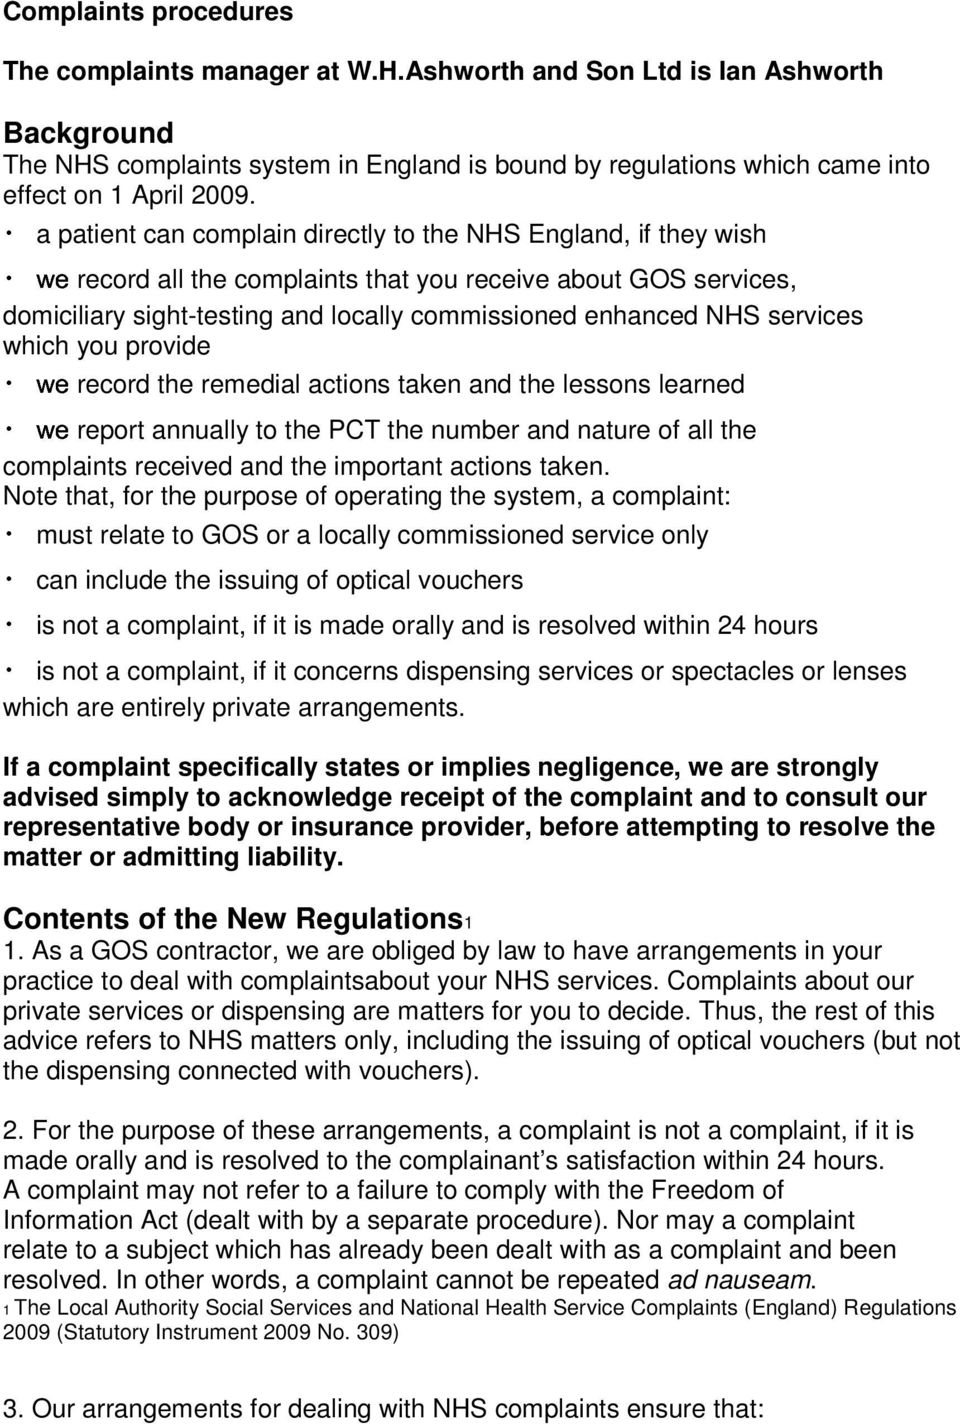 a patient can complain directly to the NHS England, if they wish record all the complaints that you receive about GOS services, domiciliary sight-testing and locally commissioned enhanced NHS